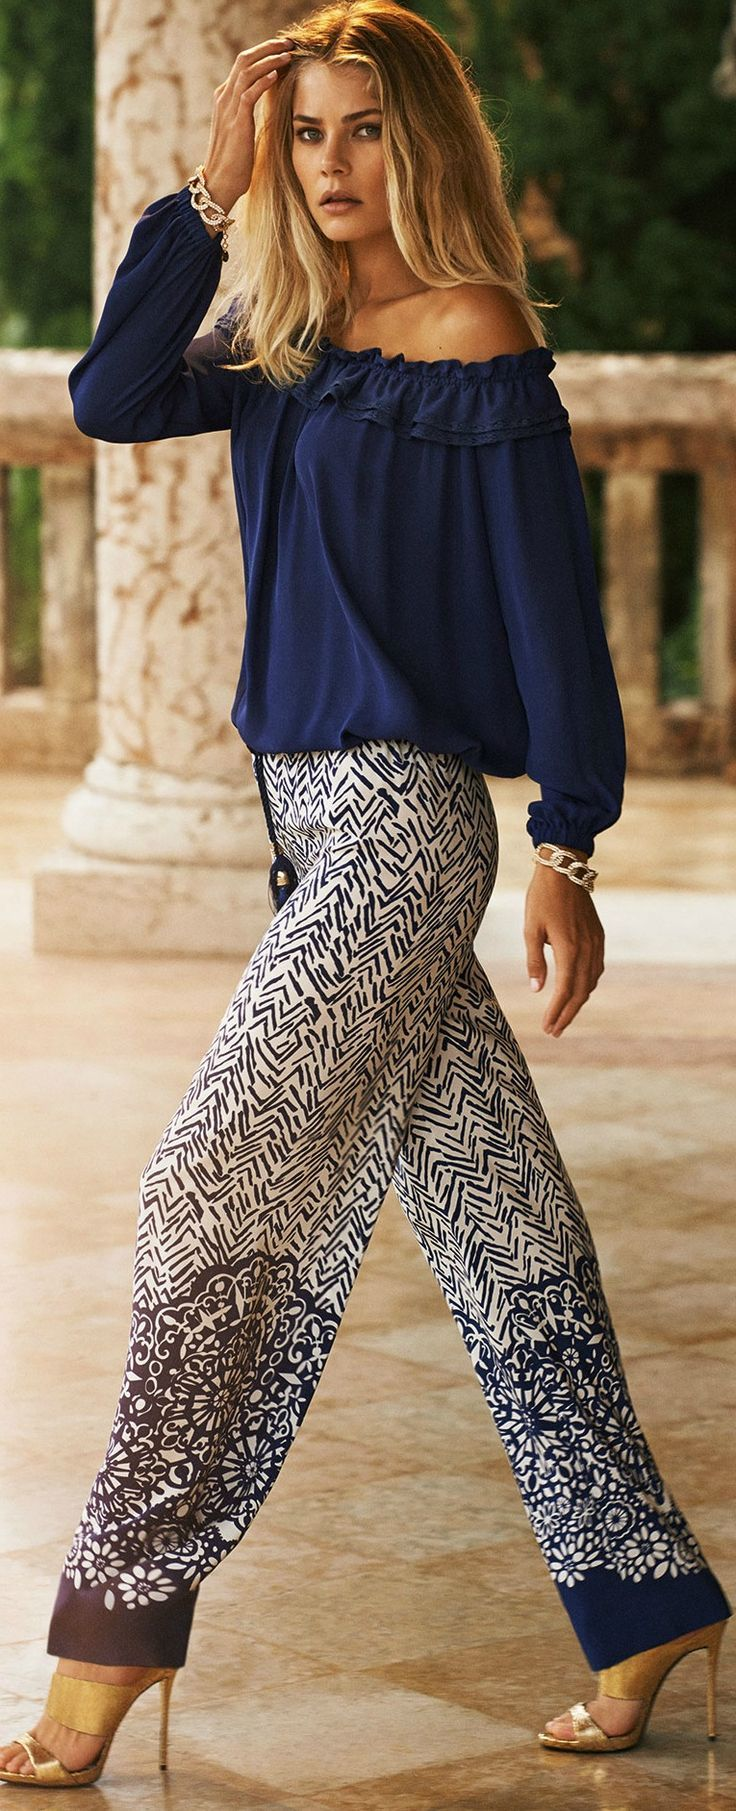 Leggings Patterned outfit ideas advise dress for on every day in 2019